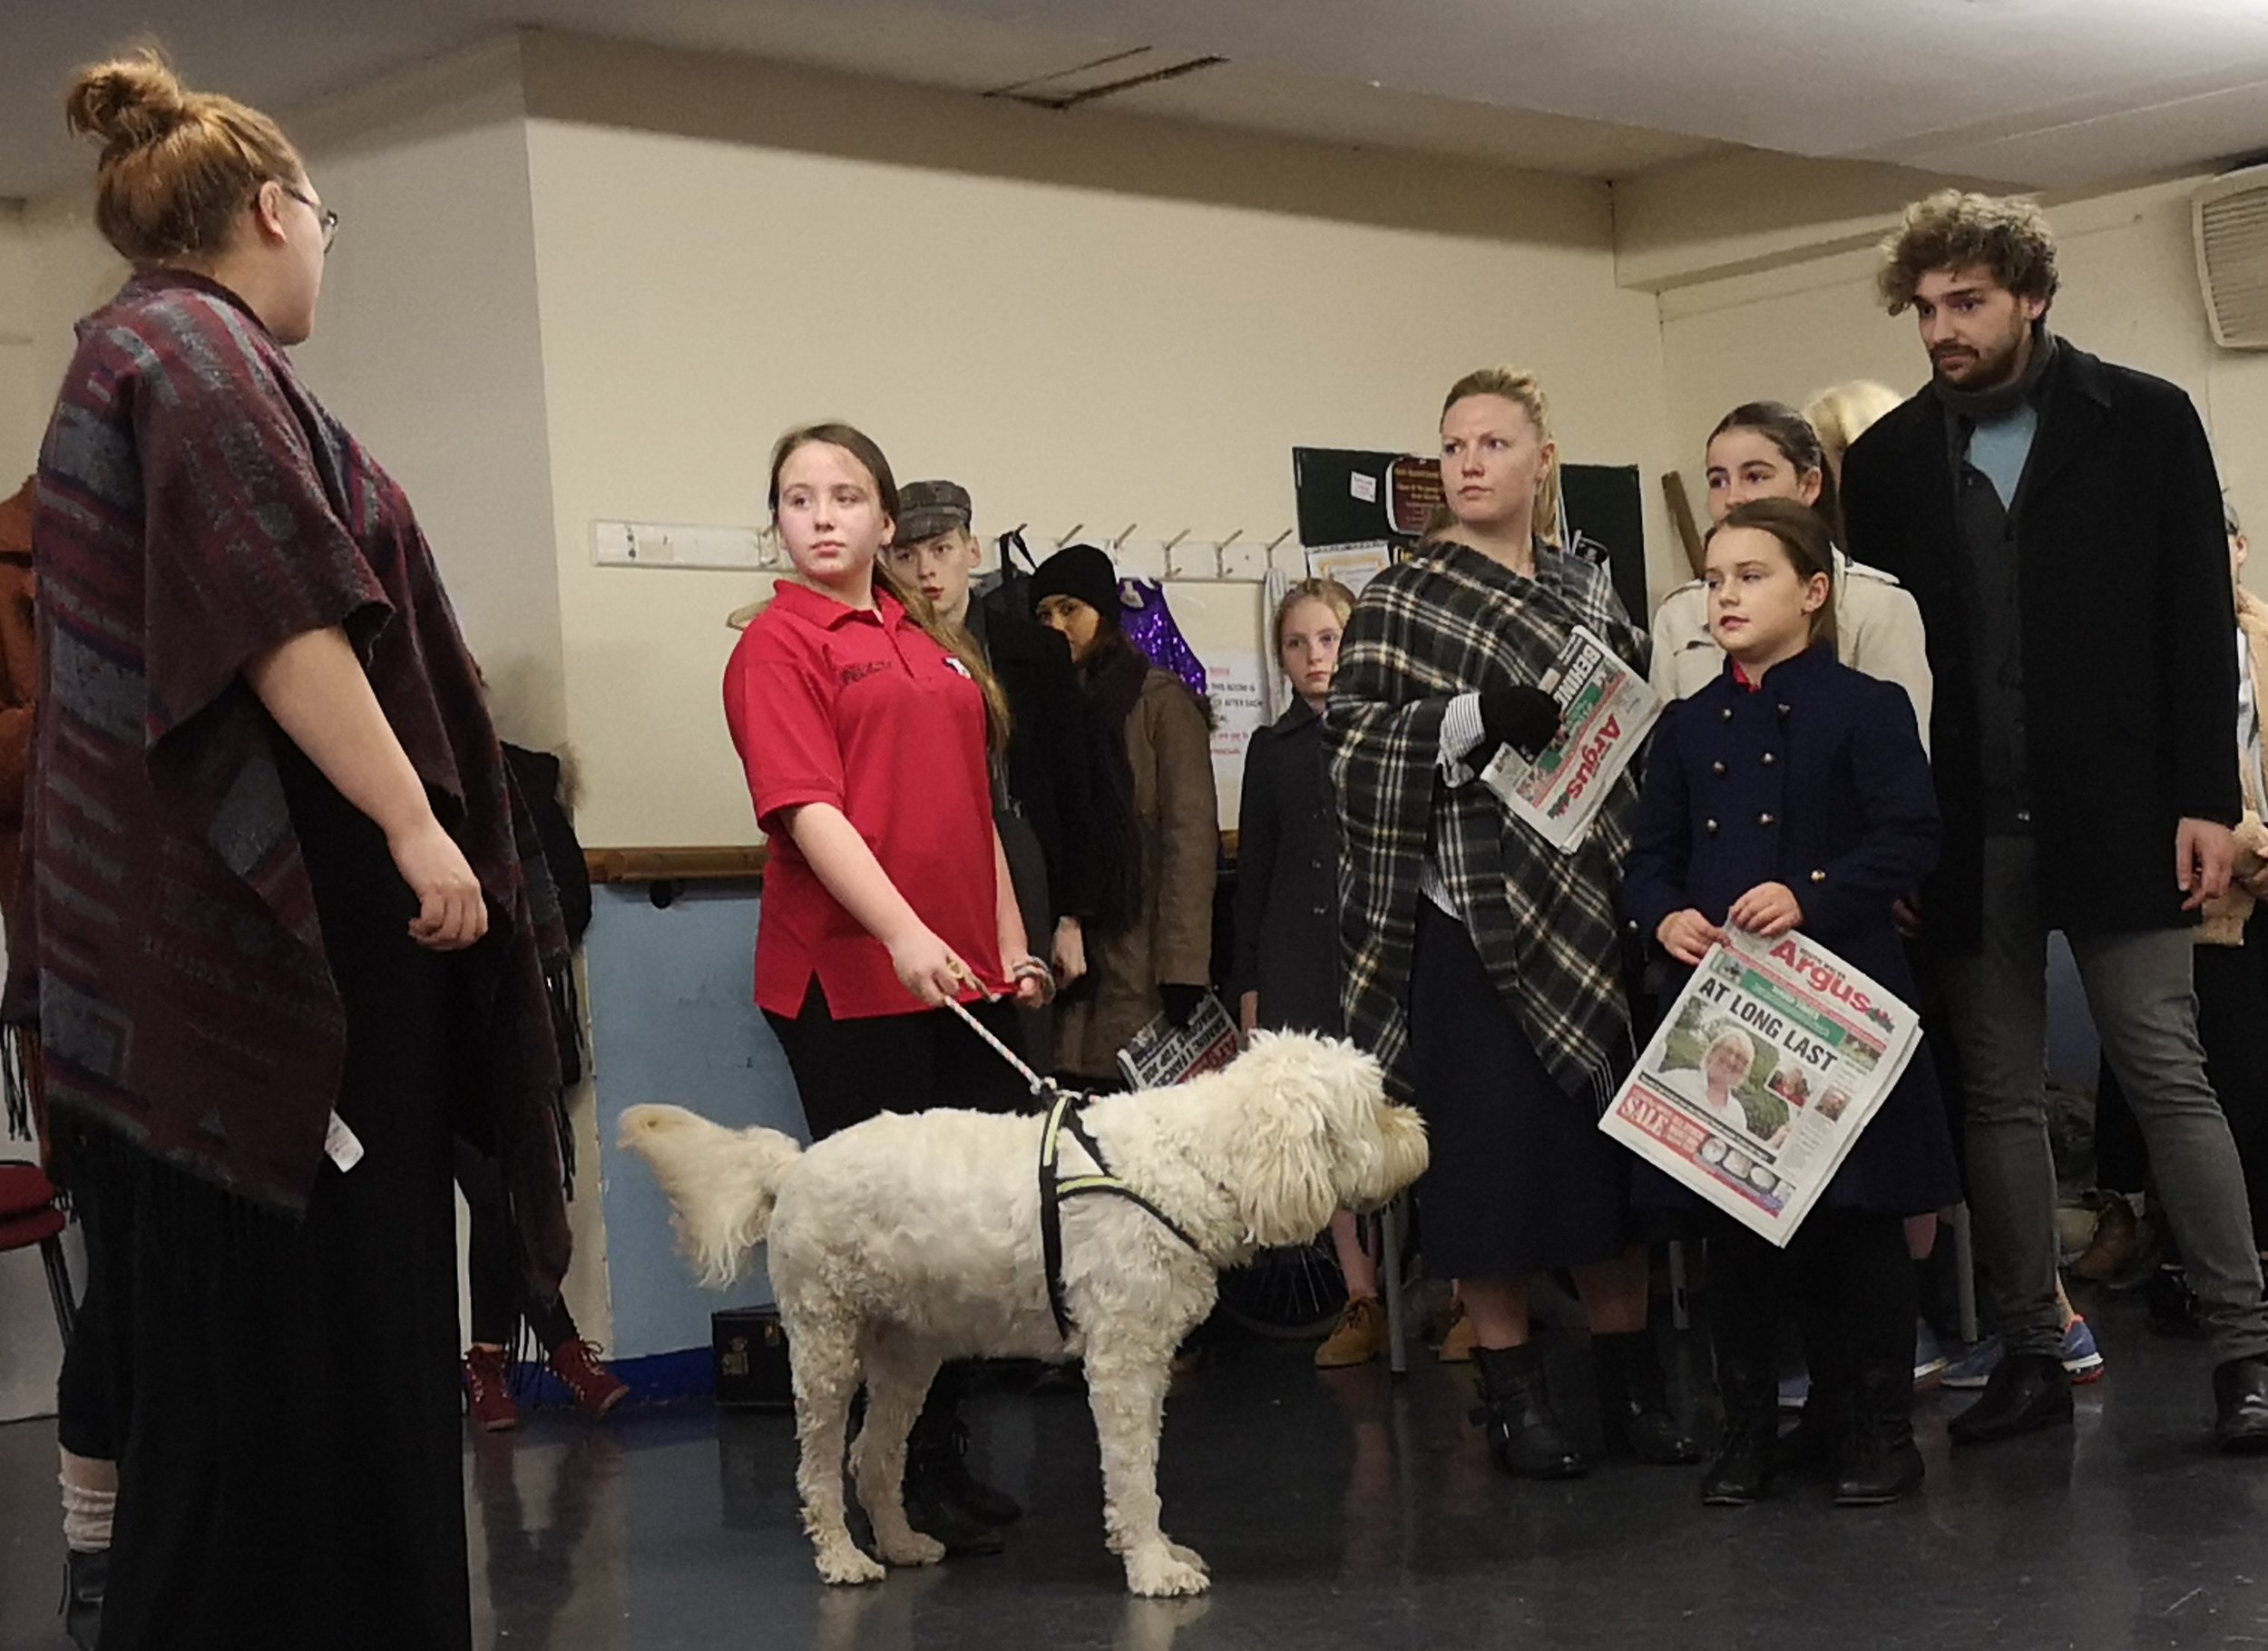 Centrestage Cymru cast members in rehearsals for Centrestage Cymru's forthcoming presentation of Annie which comes to Newport's Dolman Theatre from May 1-4, 2019. Photo: Rachel Howells.